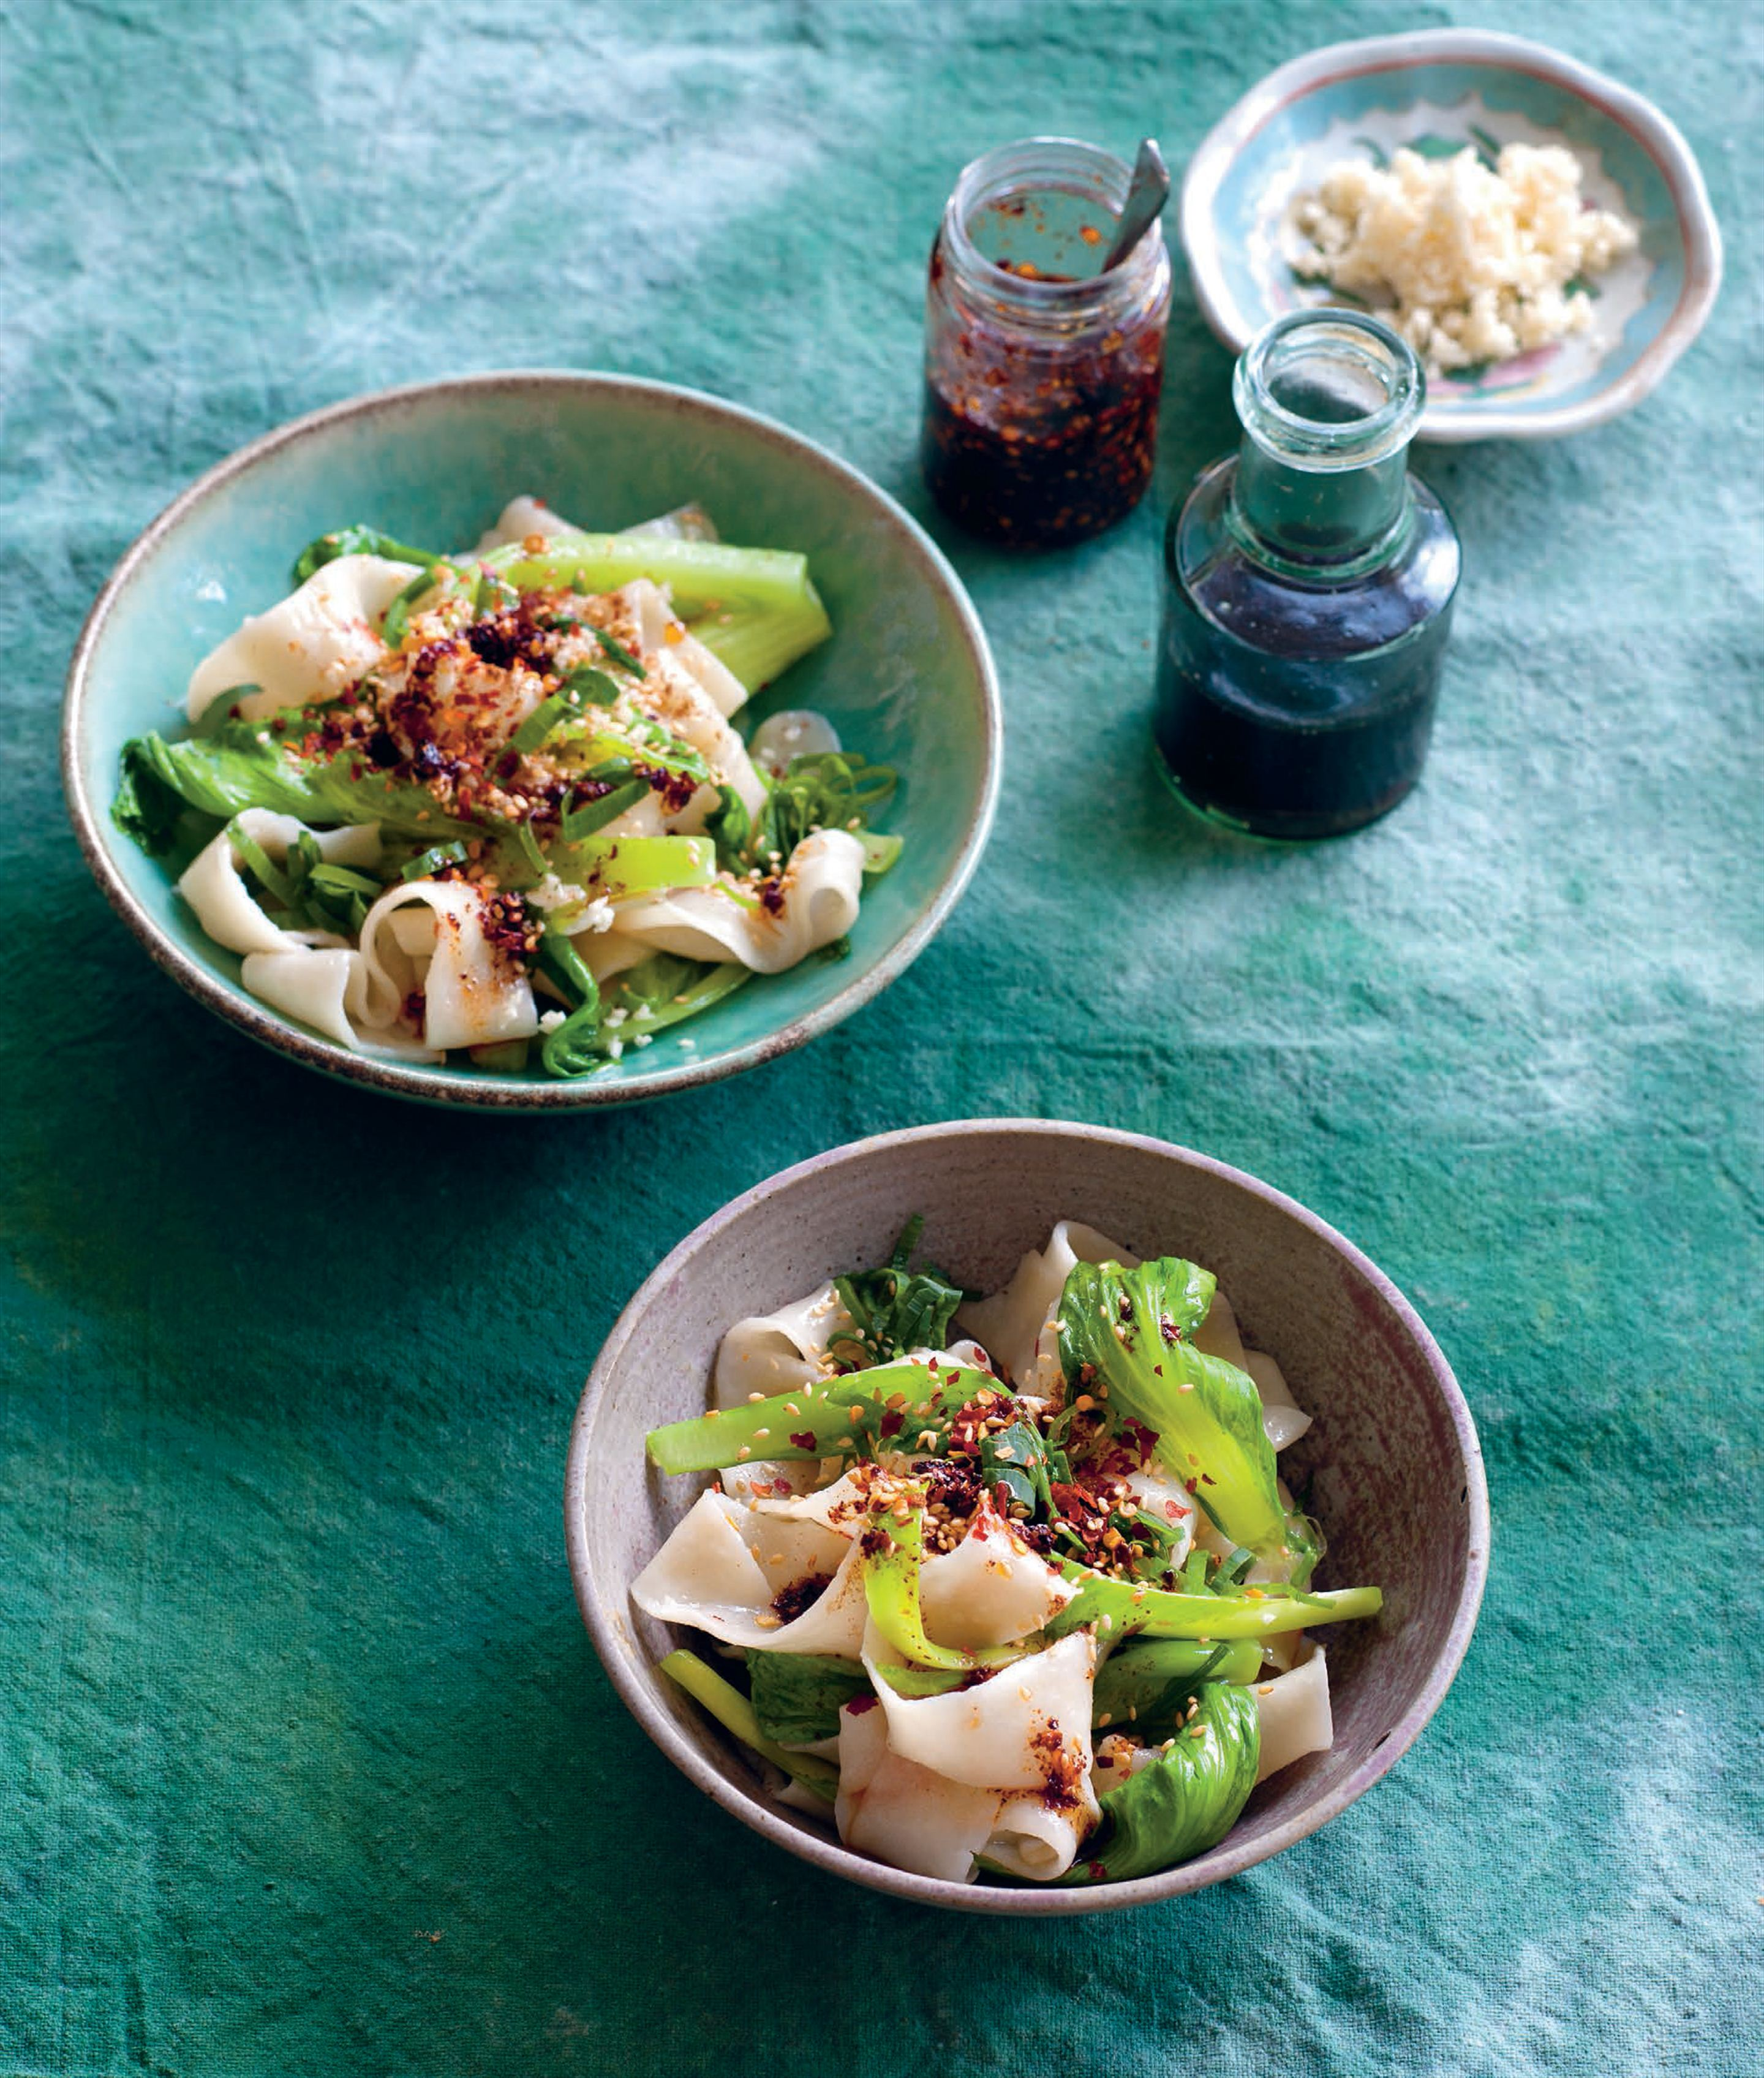 Hand-cut noodles with mustard greens, vinegar and chilli